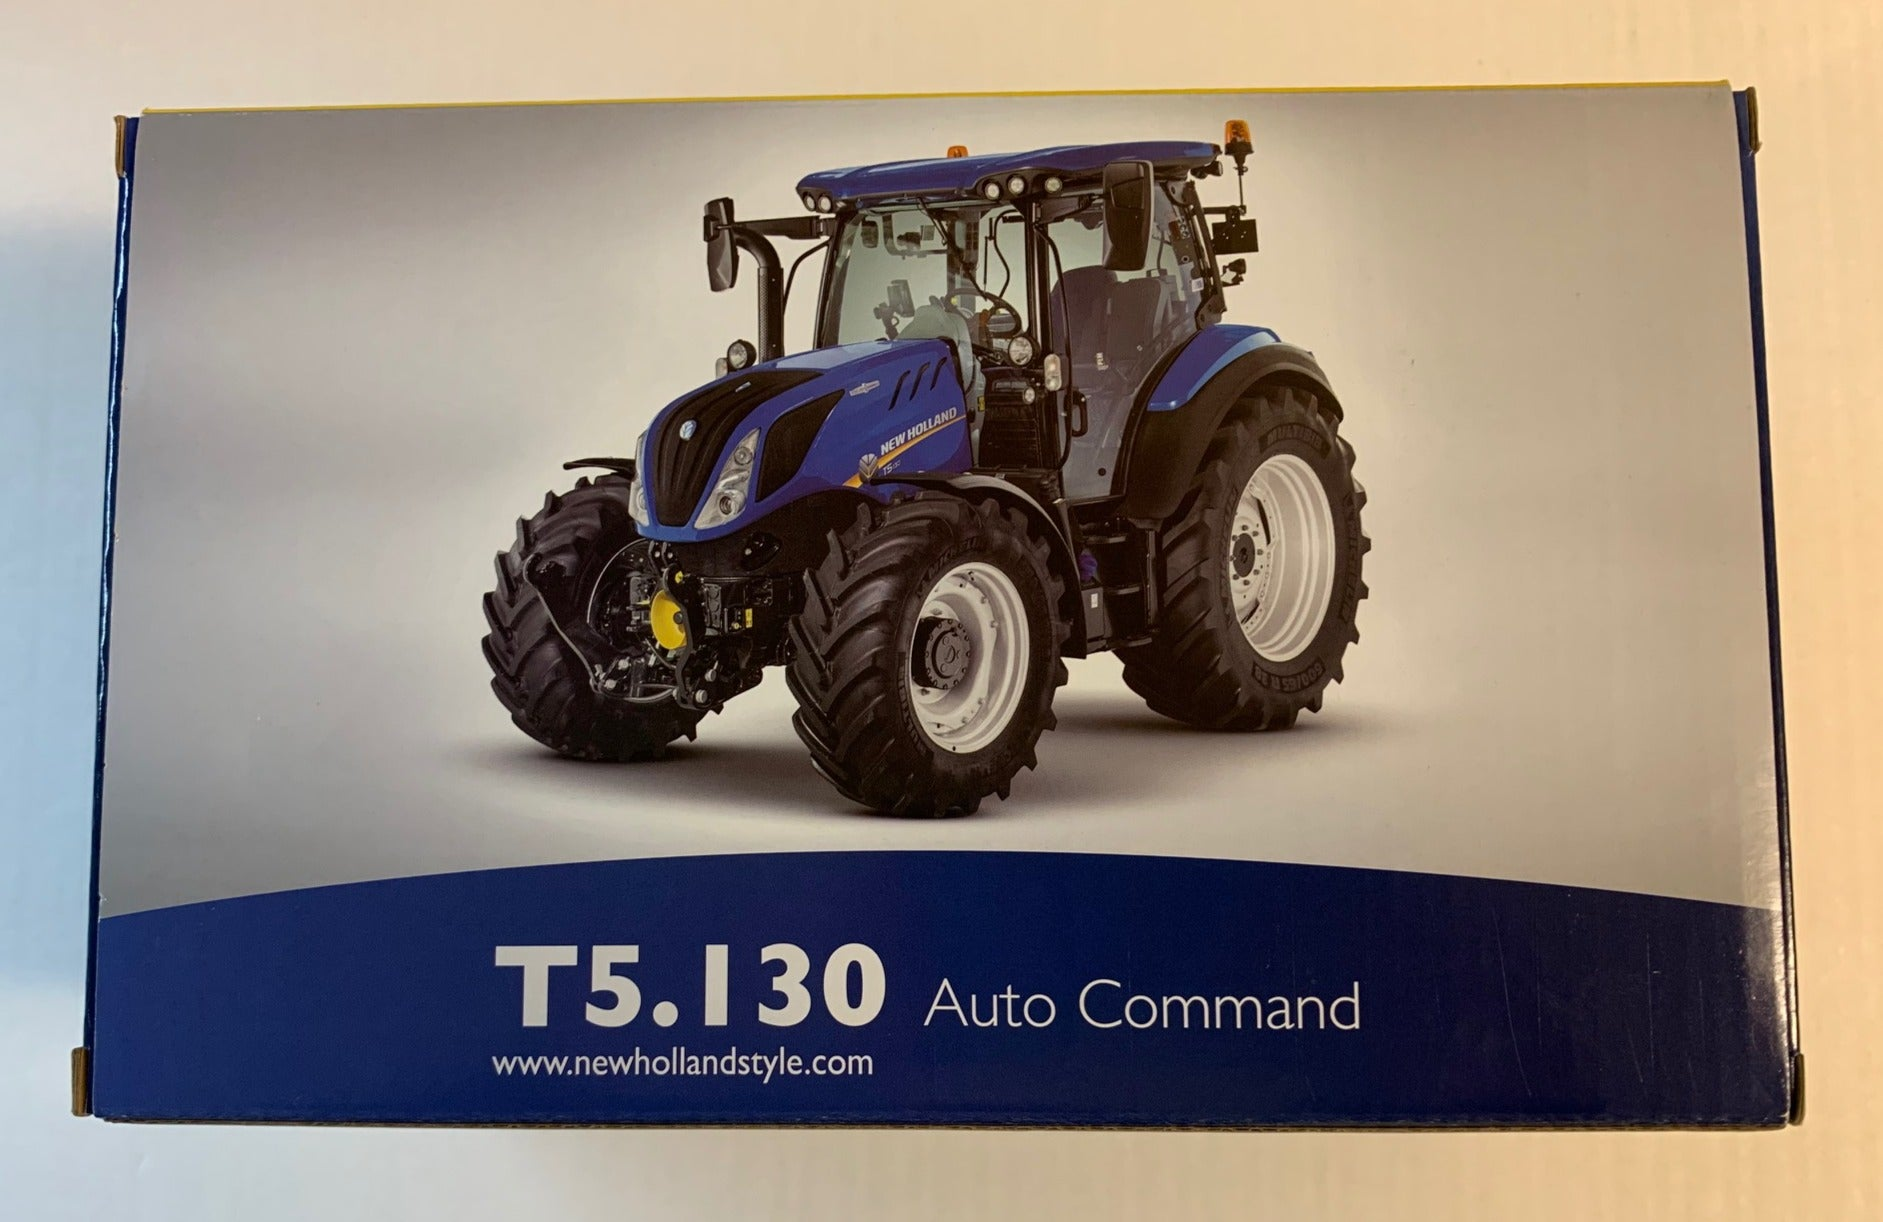 UH5360 UNIVERSAL HOBBIES NEW HOLLAND AGRICULTURE T5.130 AUTO COMMAND